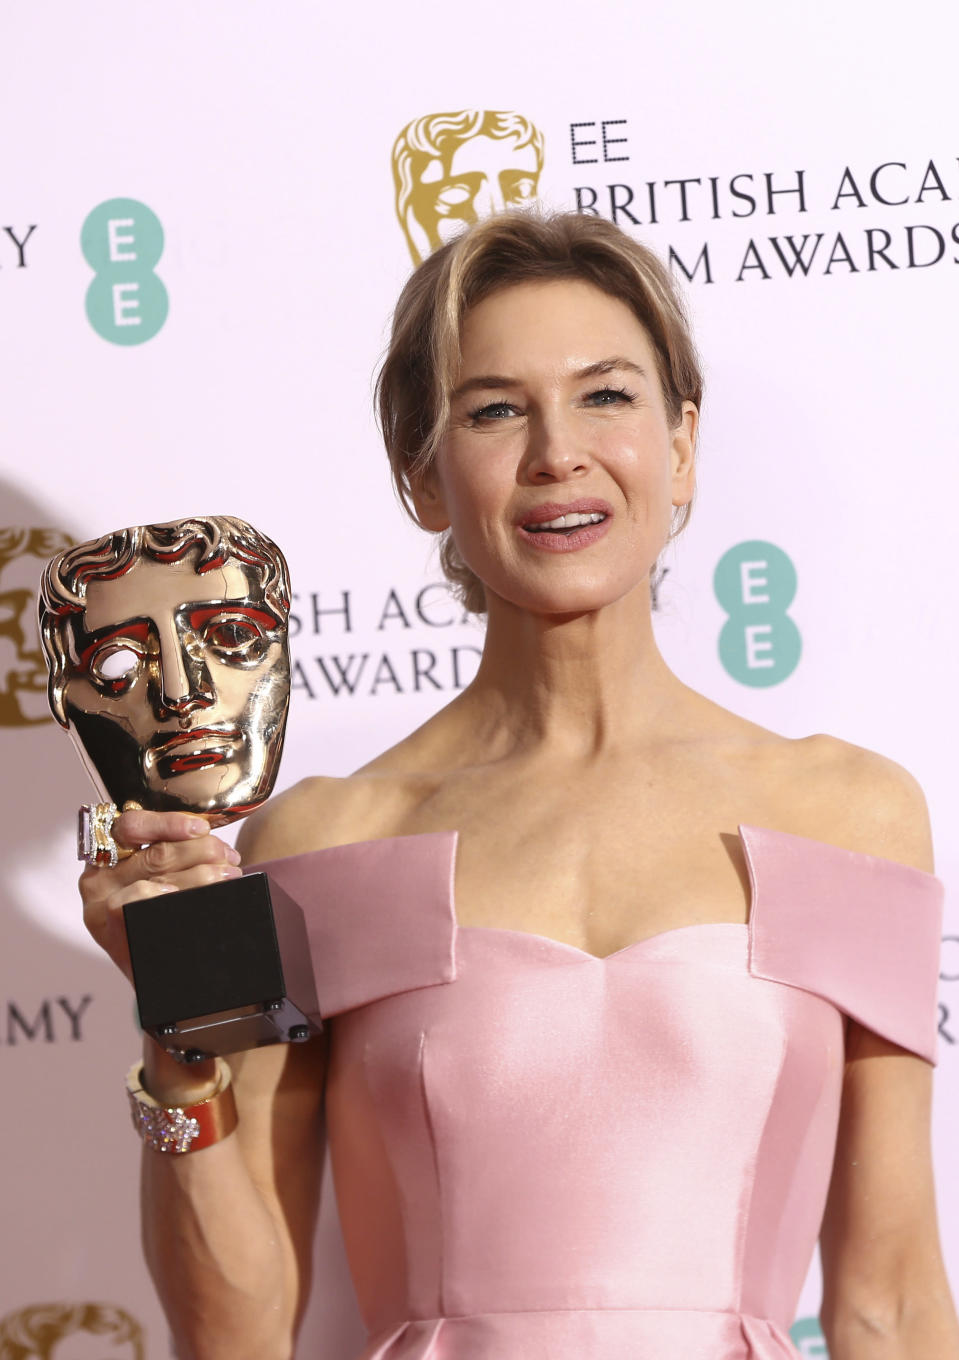 "FILE - Actress Renee Zellweger poses with her award for Best Actress for Judy, backstage at the Bafta Film Awards in central London on Feb. 2, 2020. Zellweger has earned her first Grammy nomination this year. The ""Judy"" soundtrack, which features Zellweger covering songs like ""Over the Rainbow"" and ""The Trolley Song,"" is nominated for best traditional pop vocal album. (Photo by Joel C Ryan/Invision/AP, File)"